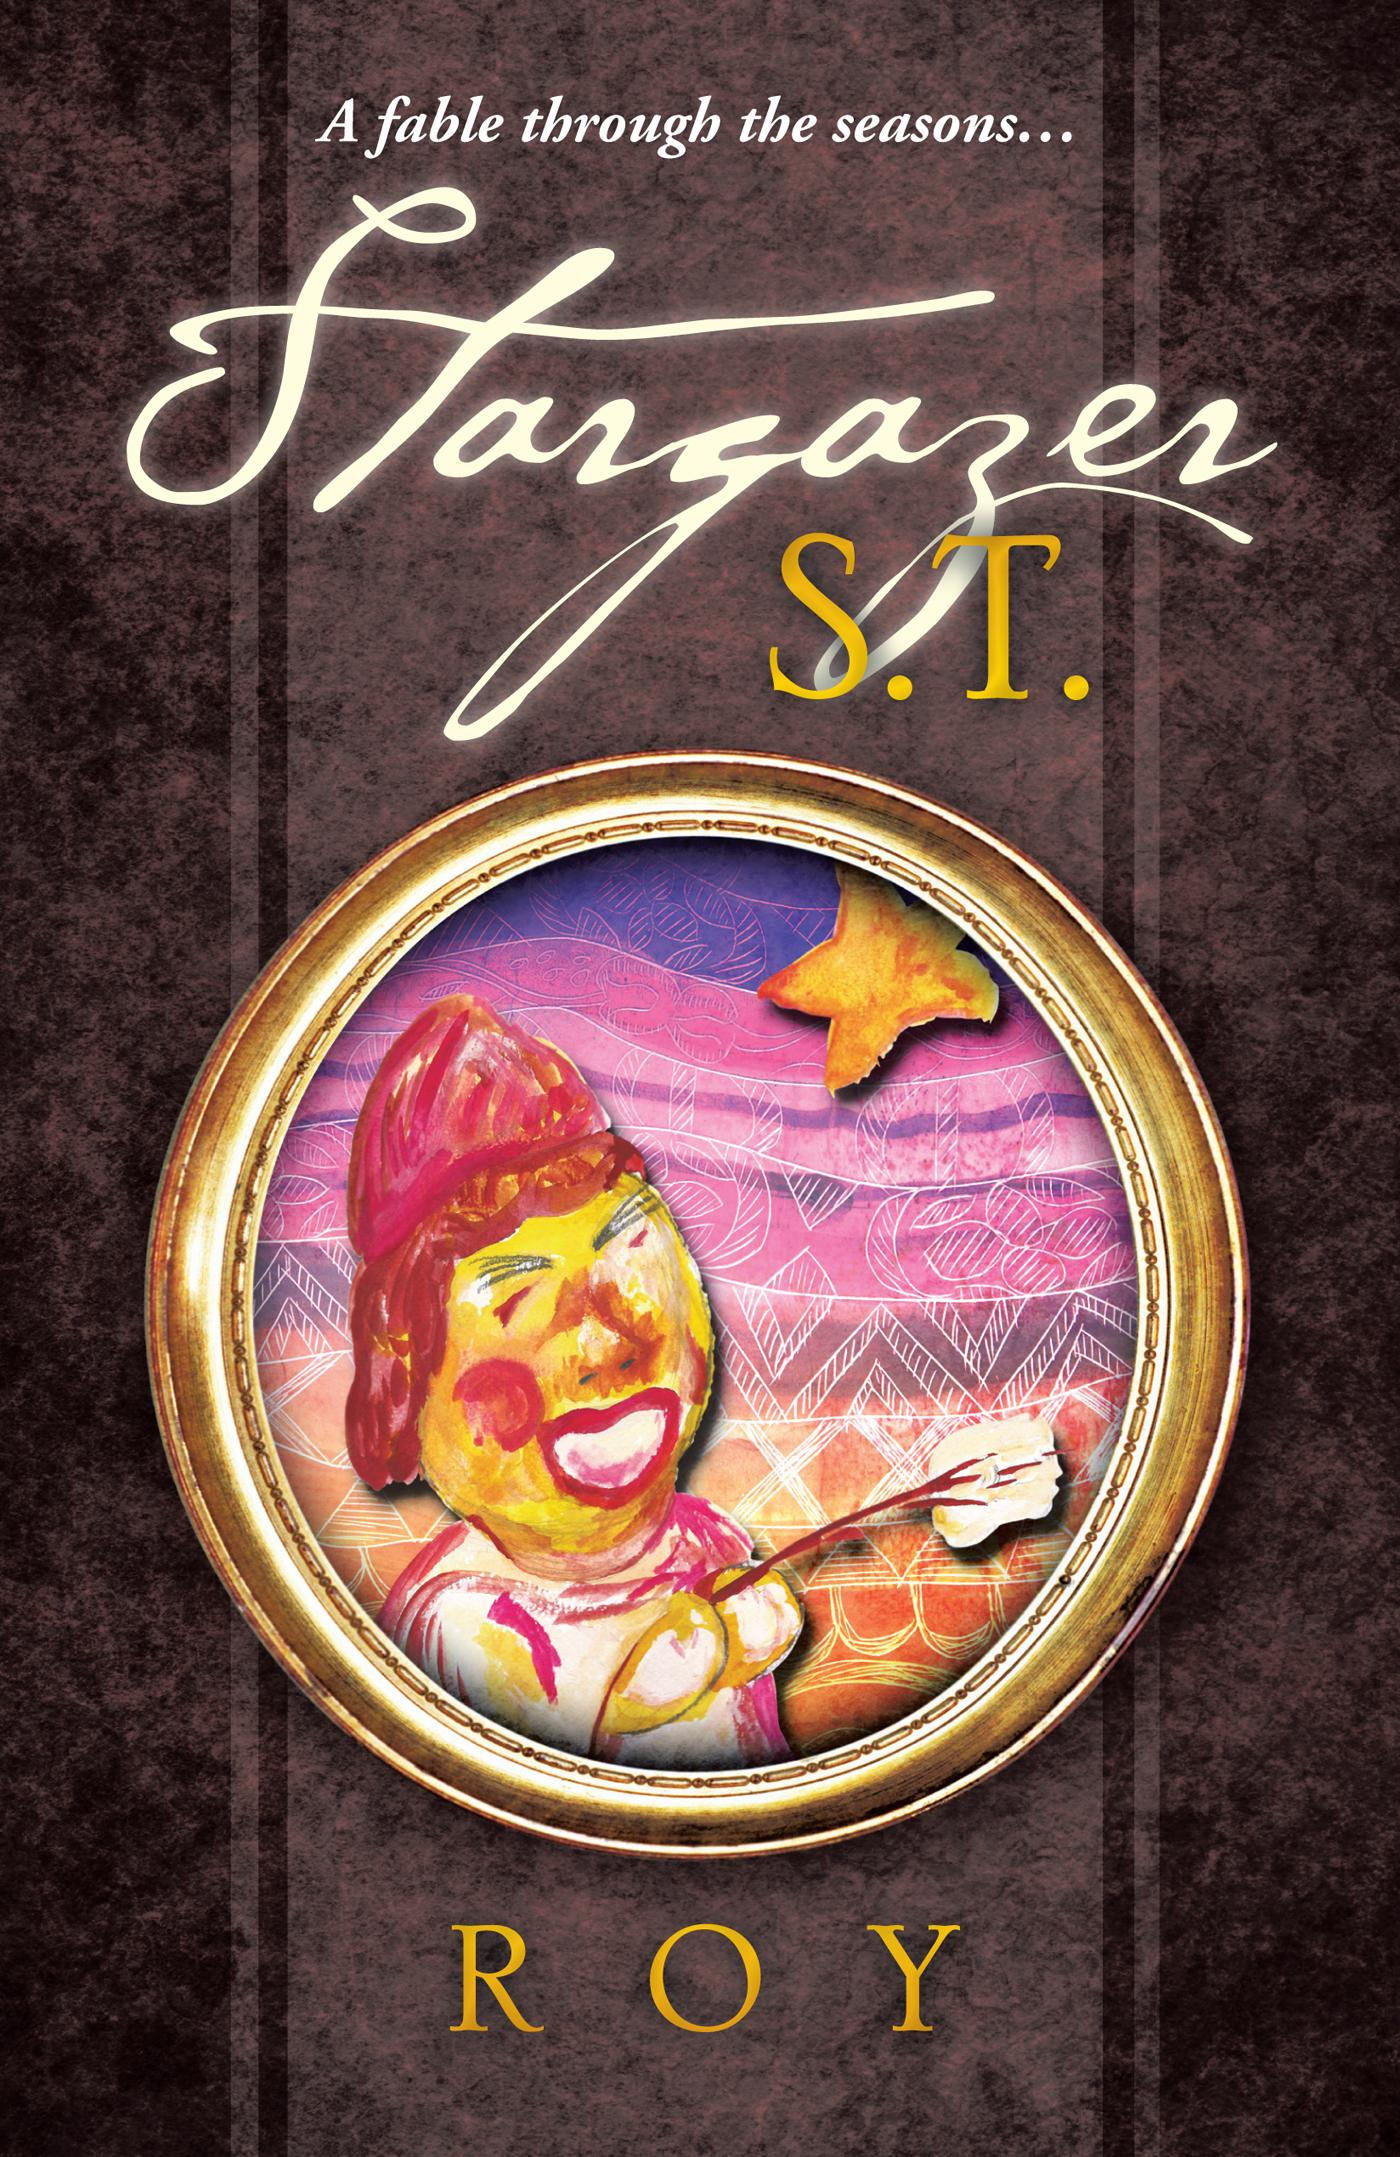 Stargazer S.T.: A fable through the seasons... EB9781466926592